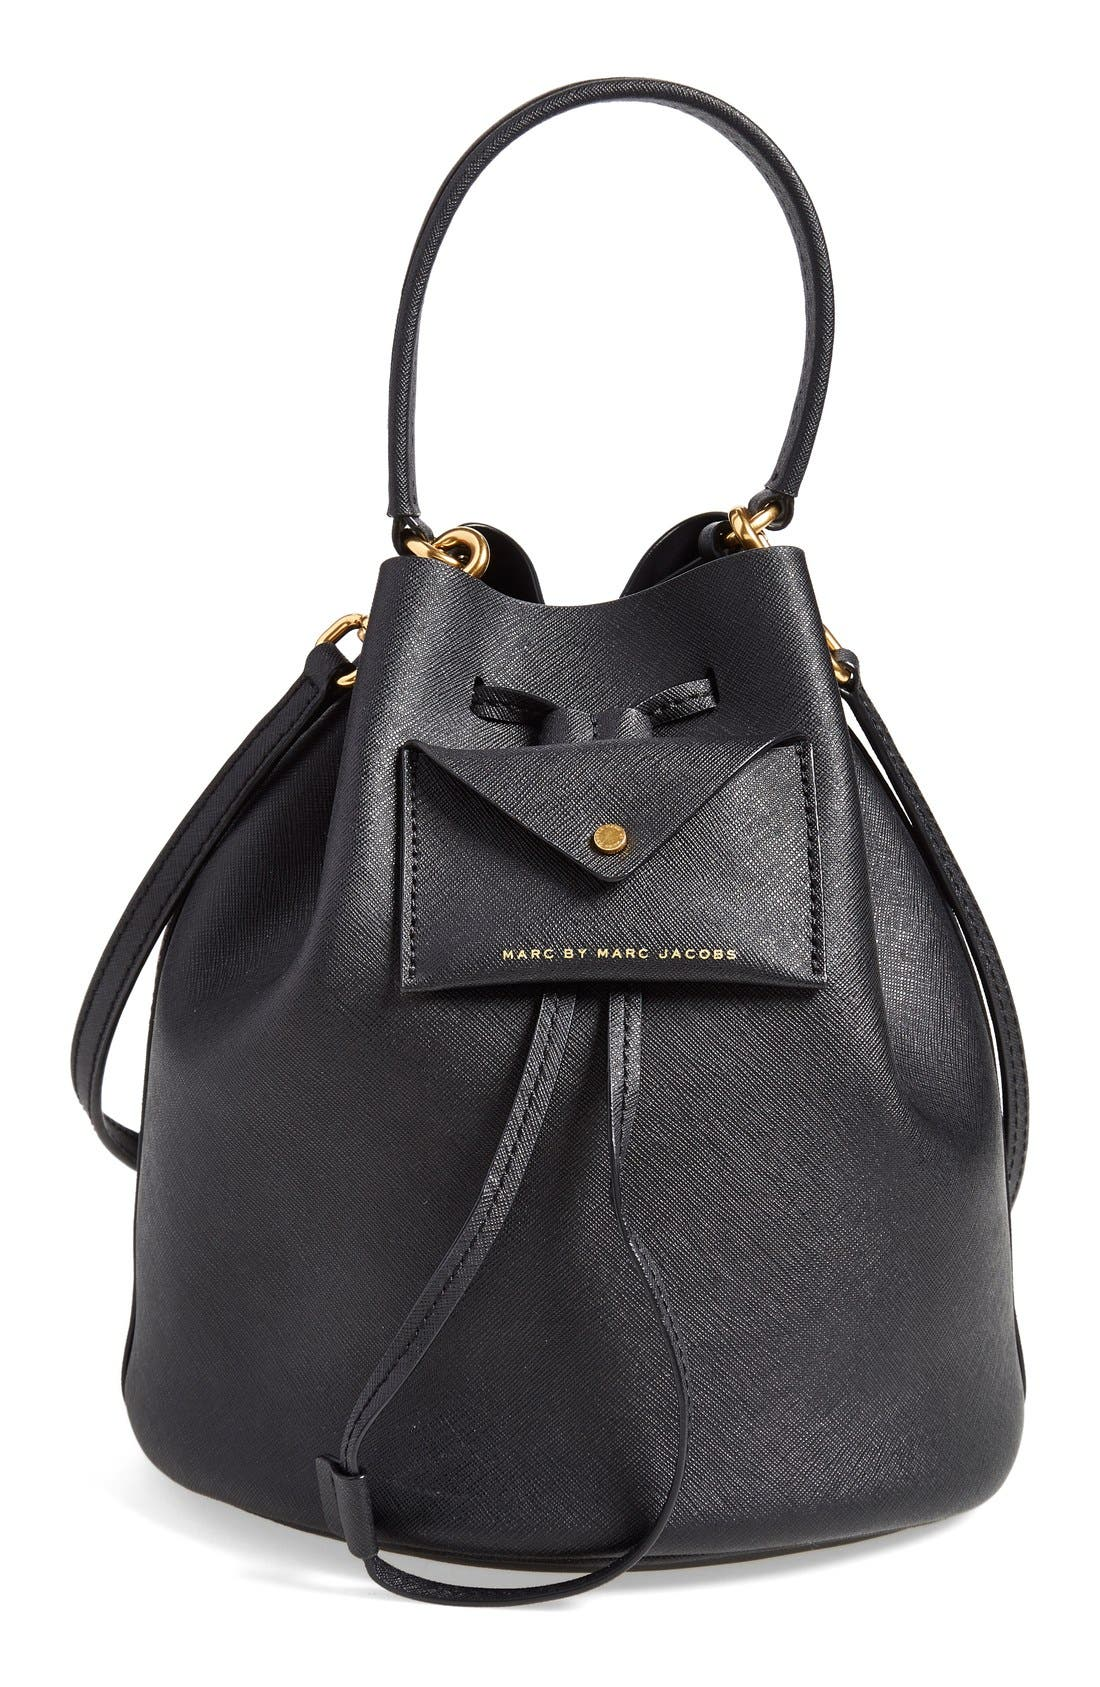 MARC BY MARC JACOBS 'Metropoli' Leather Bucket Bag, Main, color, 001